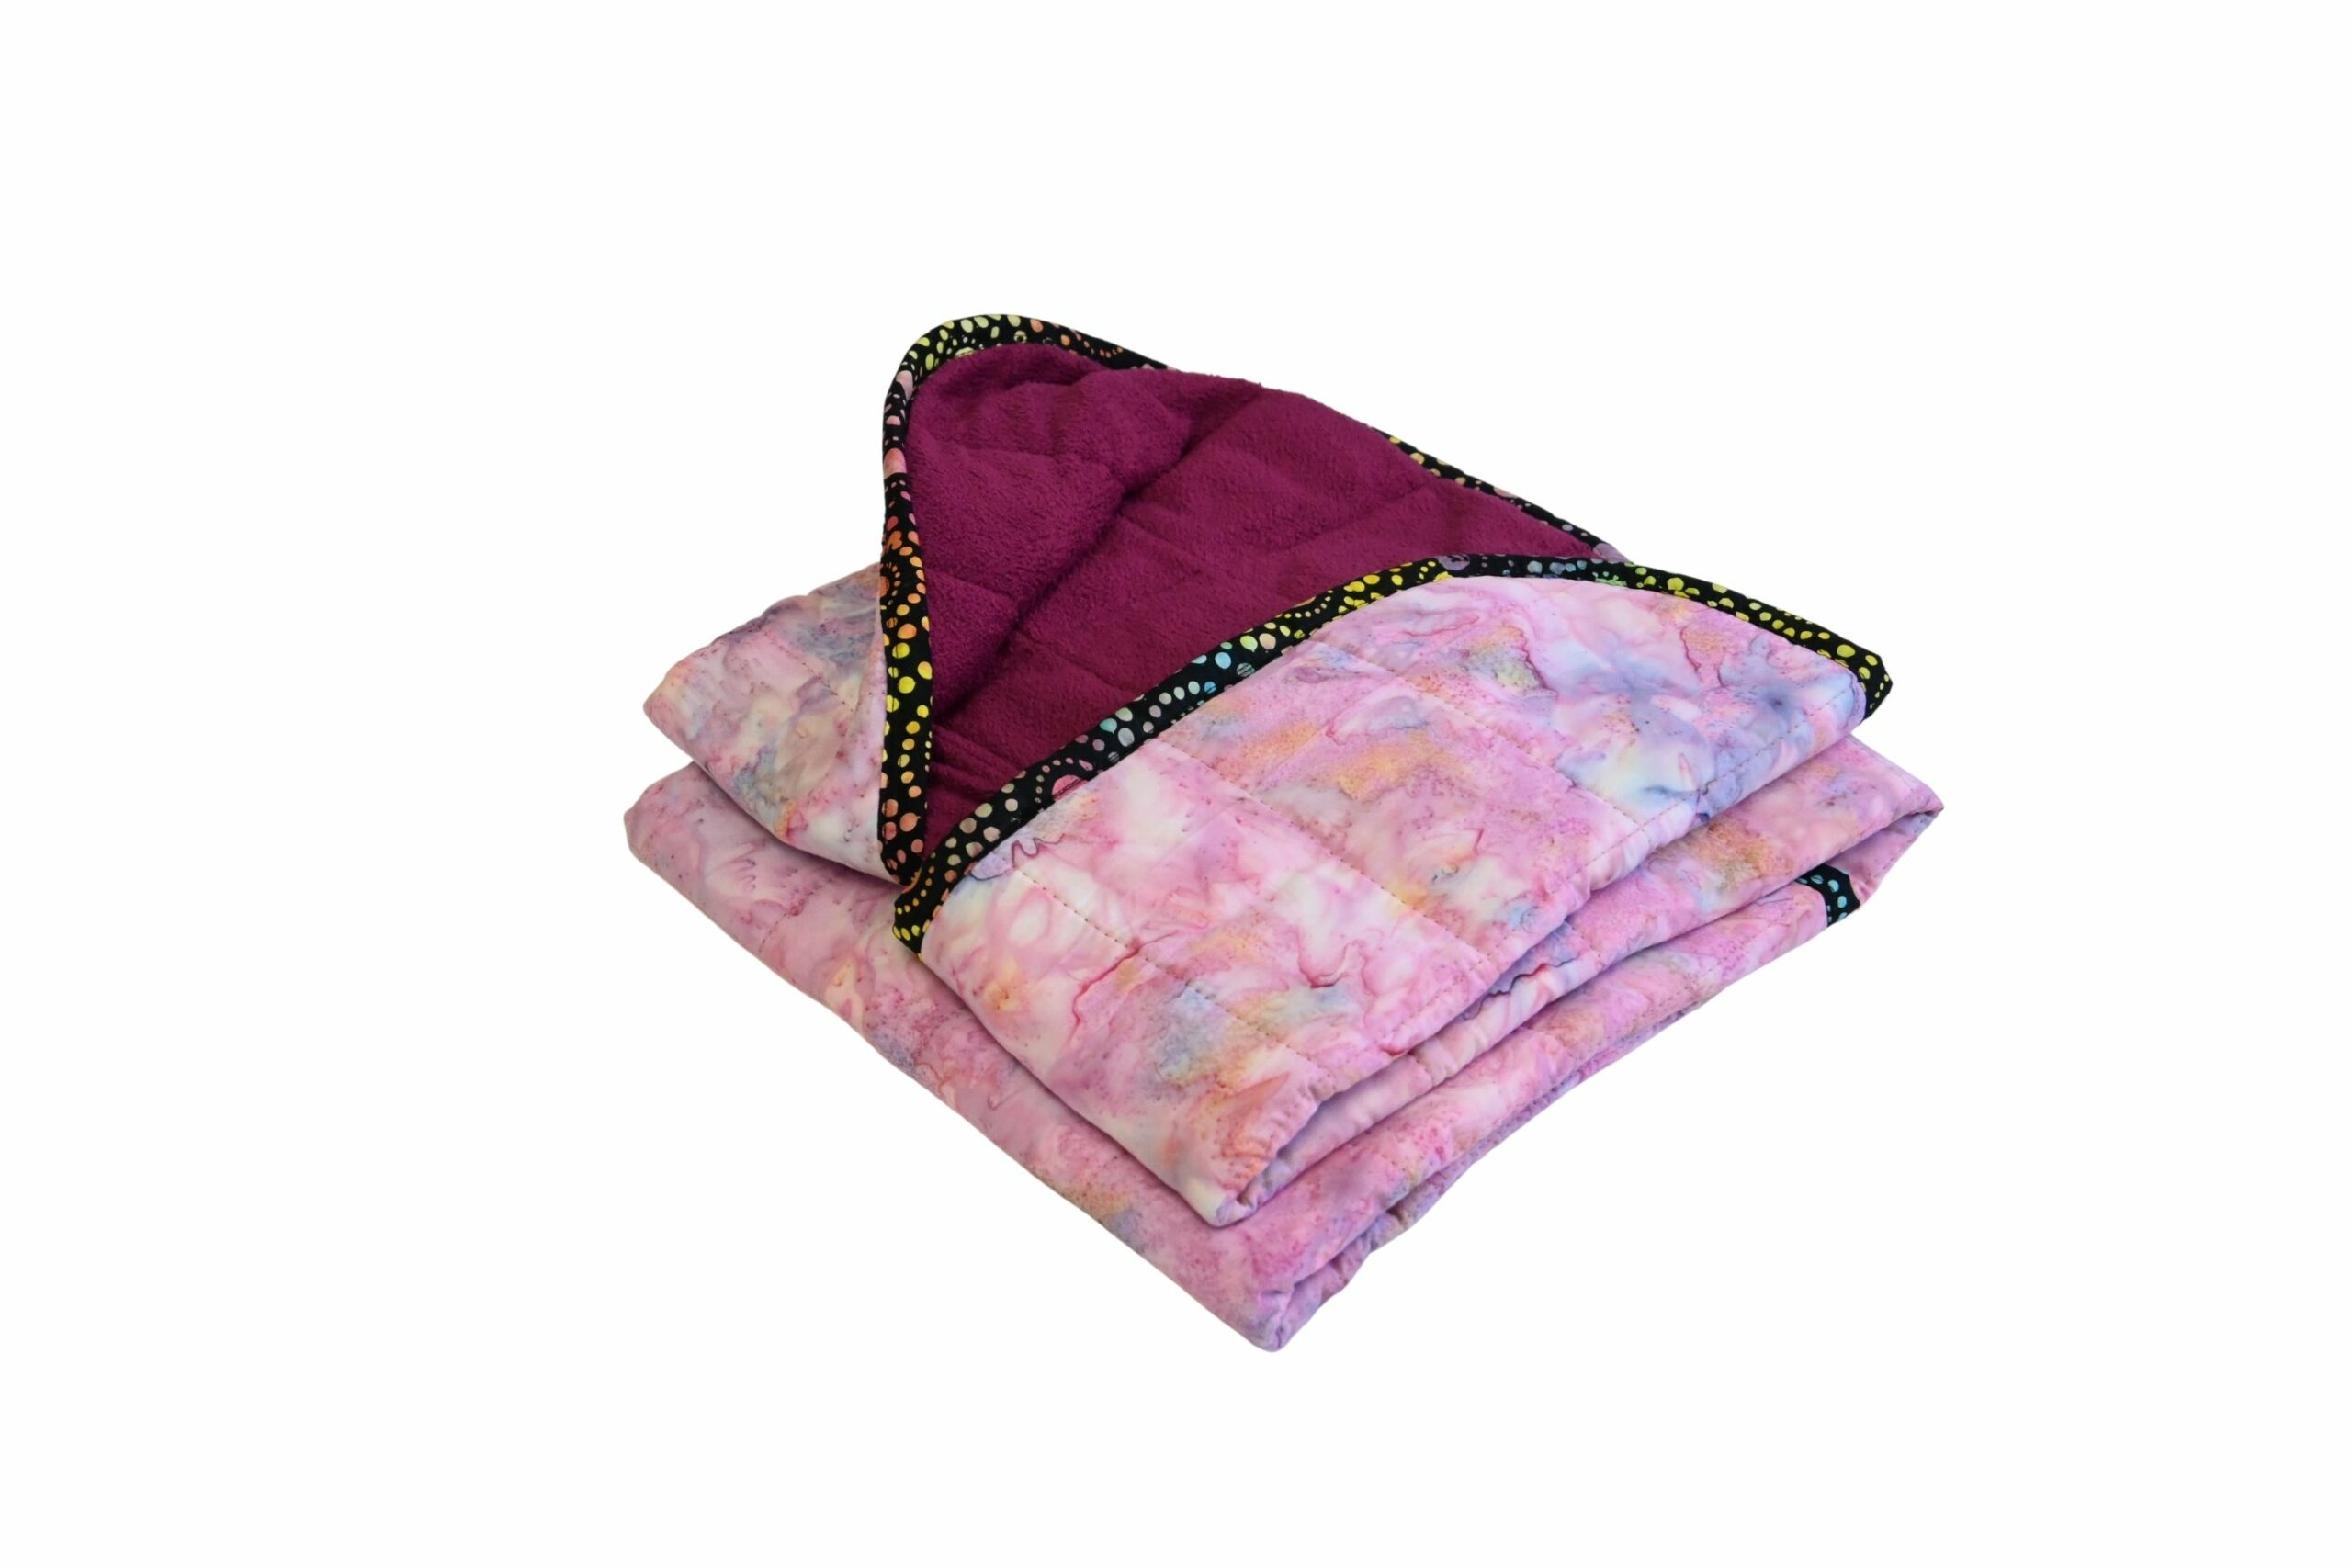 Hippo Hug Pink 4lb 20x50 Weighted Blanket